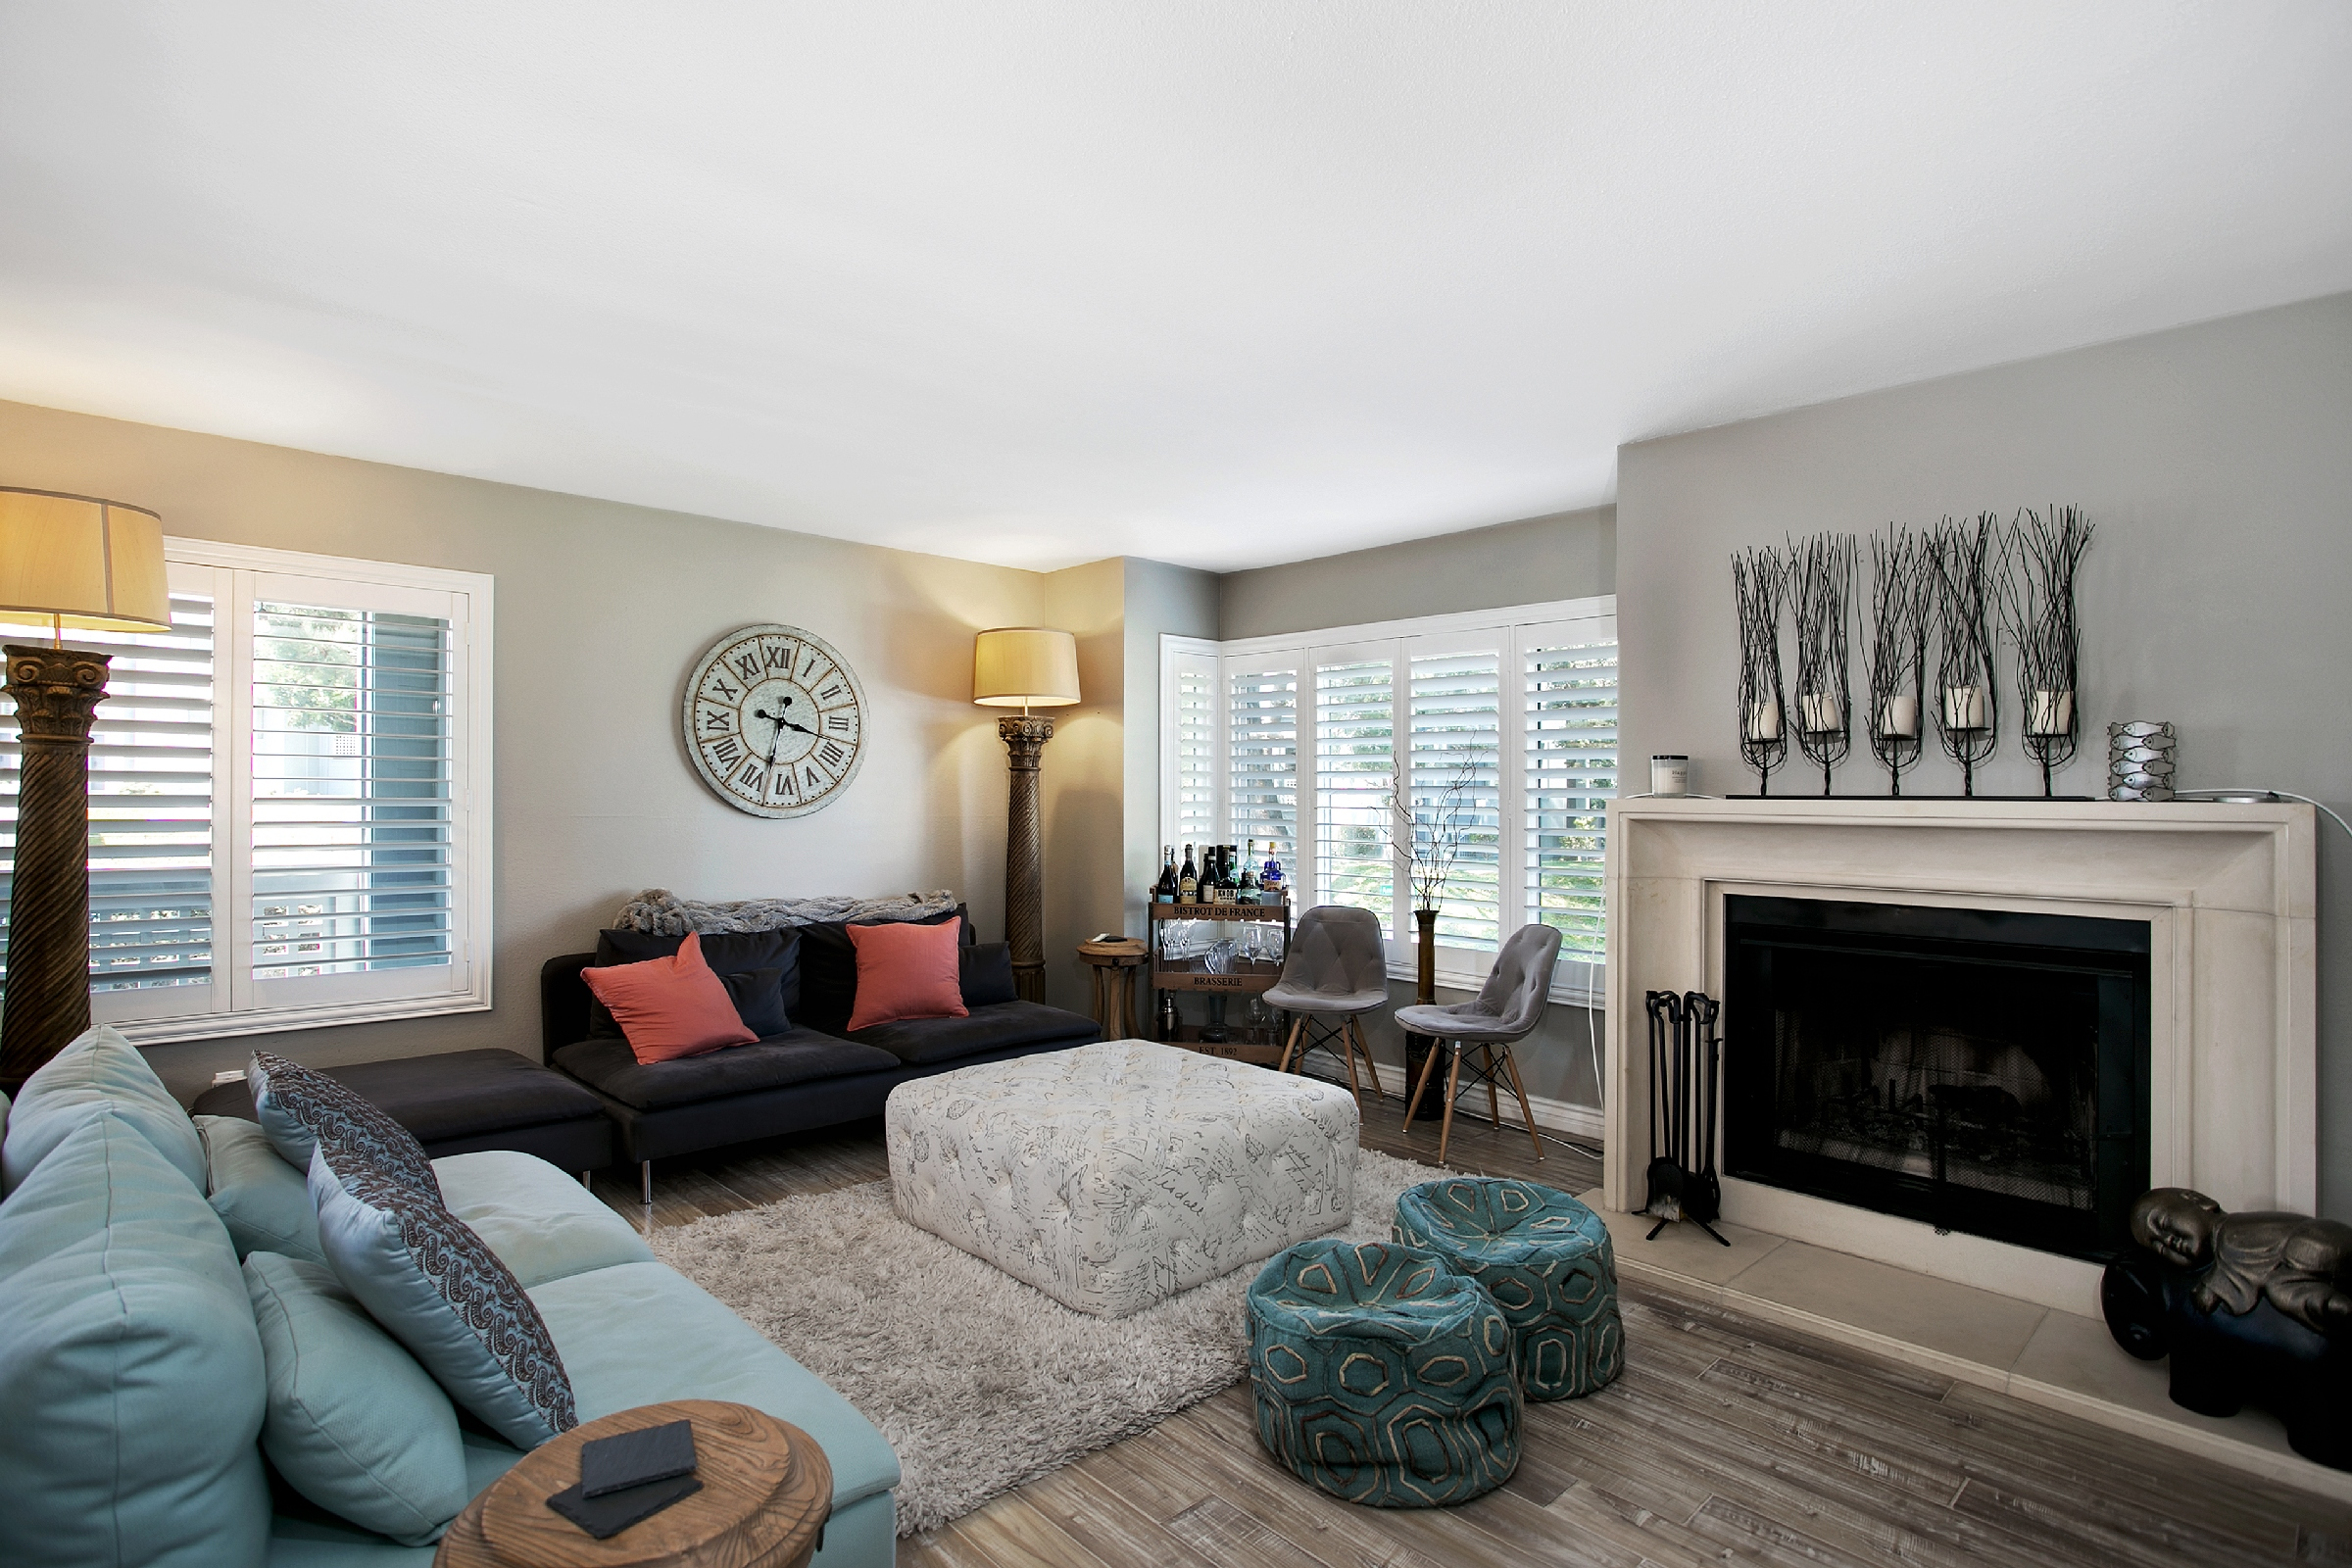 Additional photo for property listing at 845 America Way  Del Mar, California 92014 United States